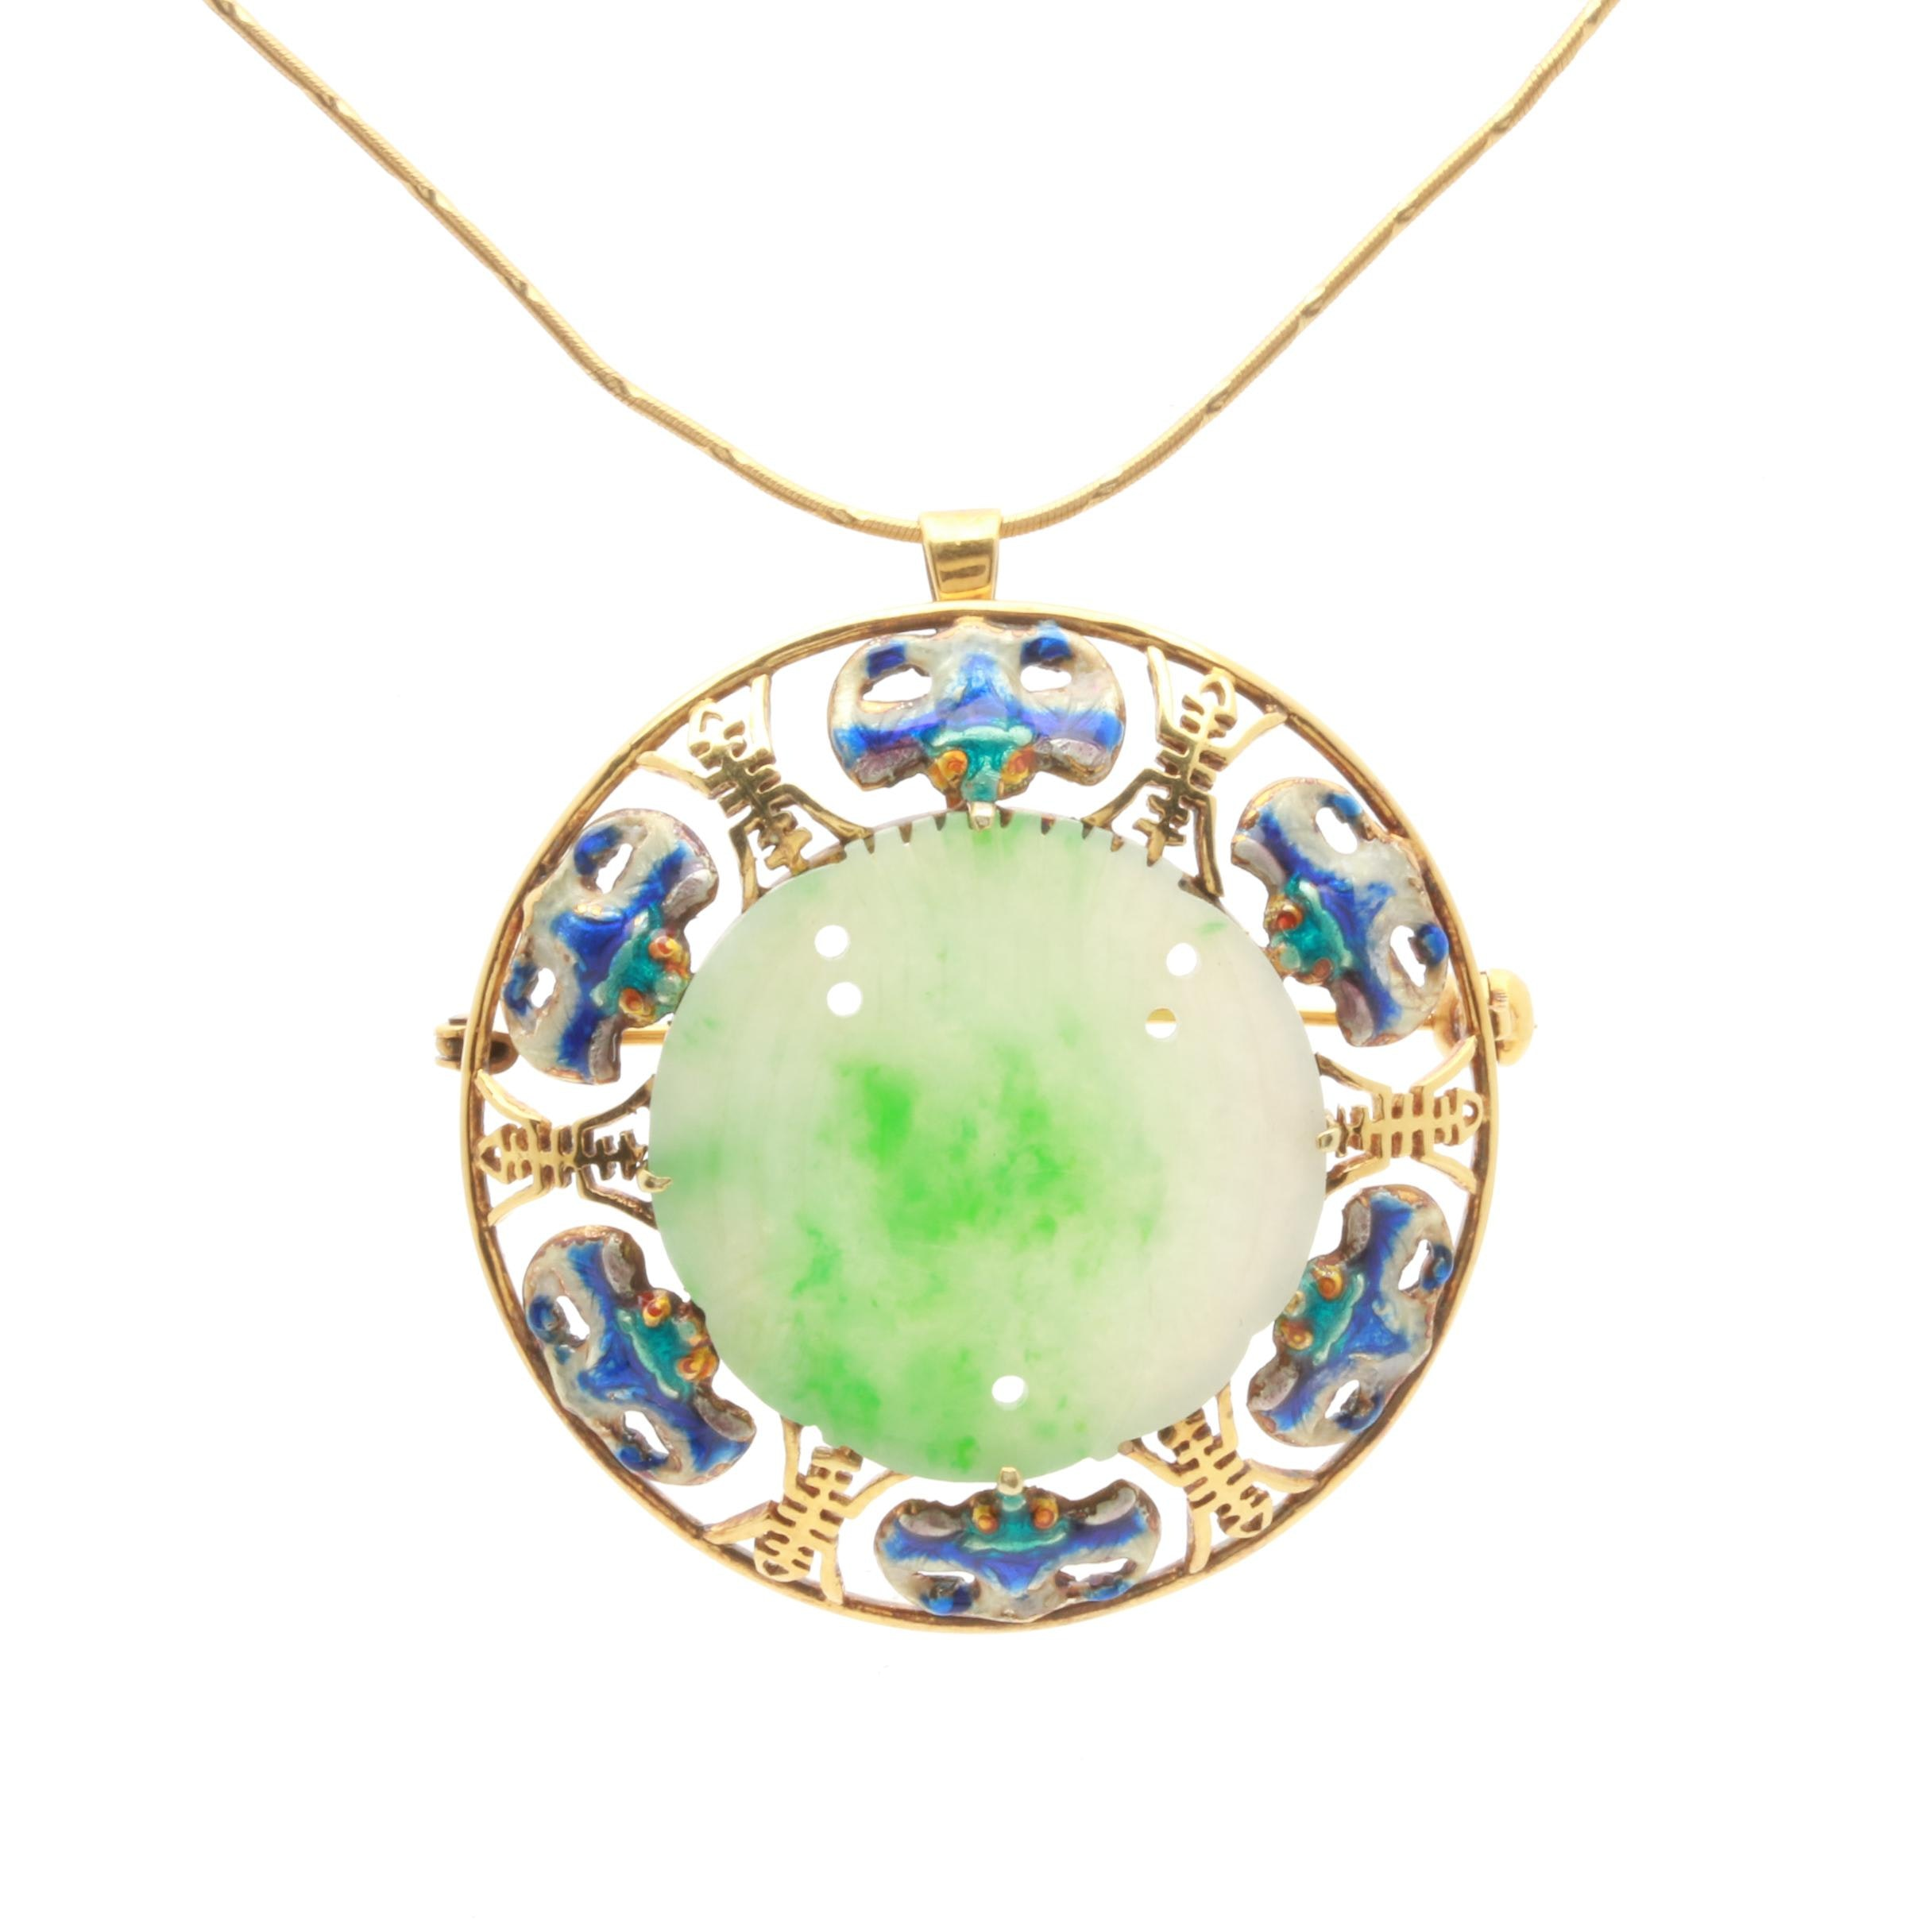 14K Yellow Gold Necklace with Chinese Jadeite and Enamel Pendant Brooch